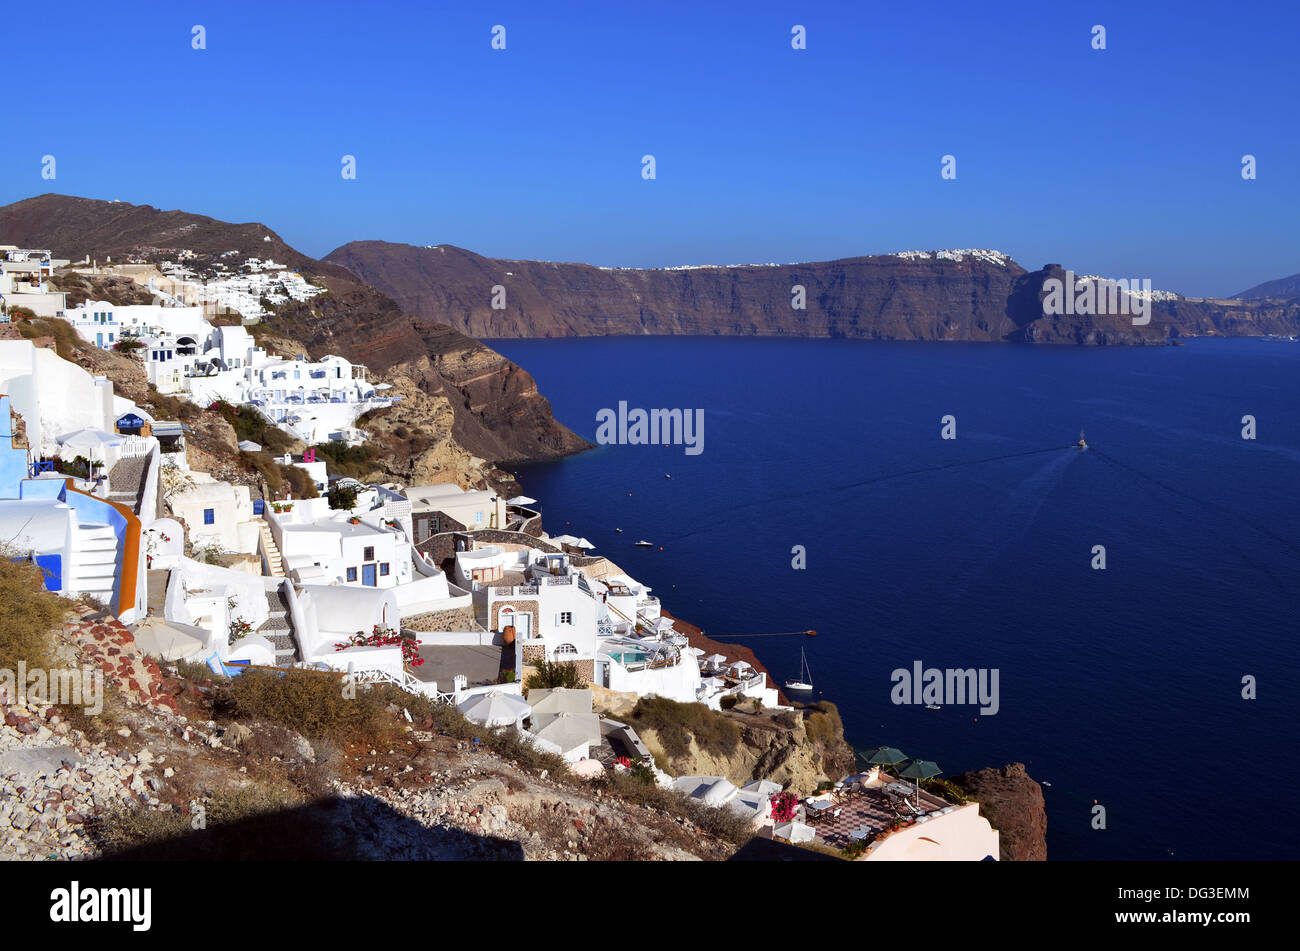 The high rocky coastline of Santorini island with white houses and hotels to welcome an ever burgeoning tourist industry. - Stock Image